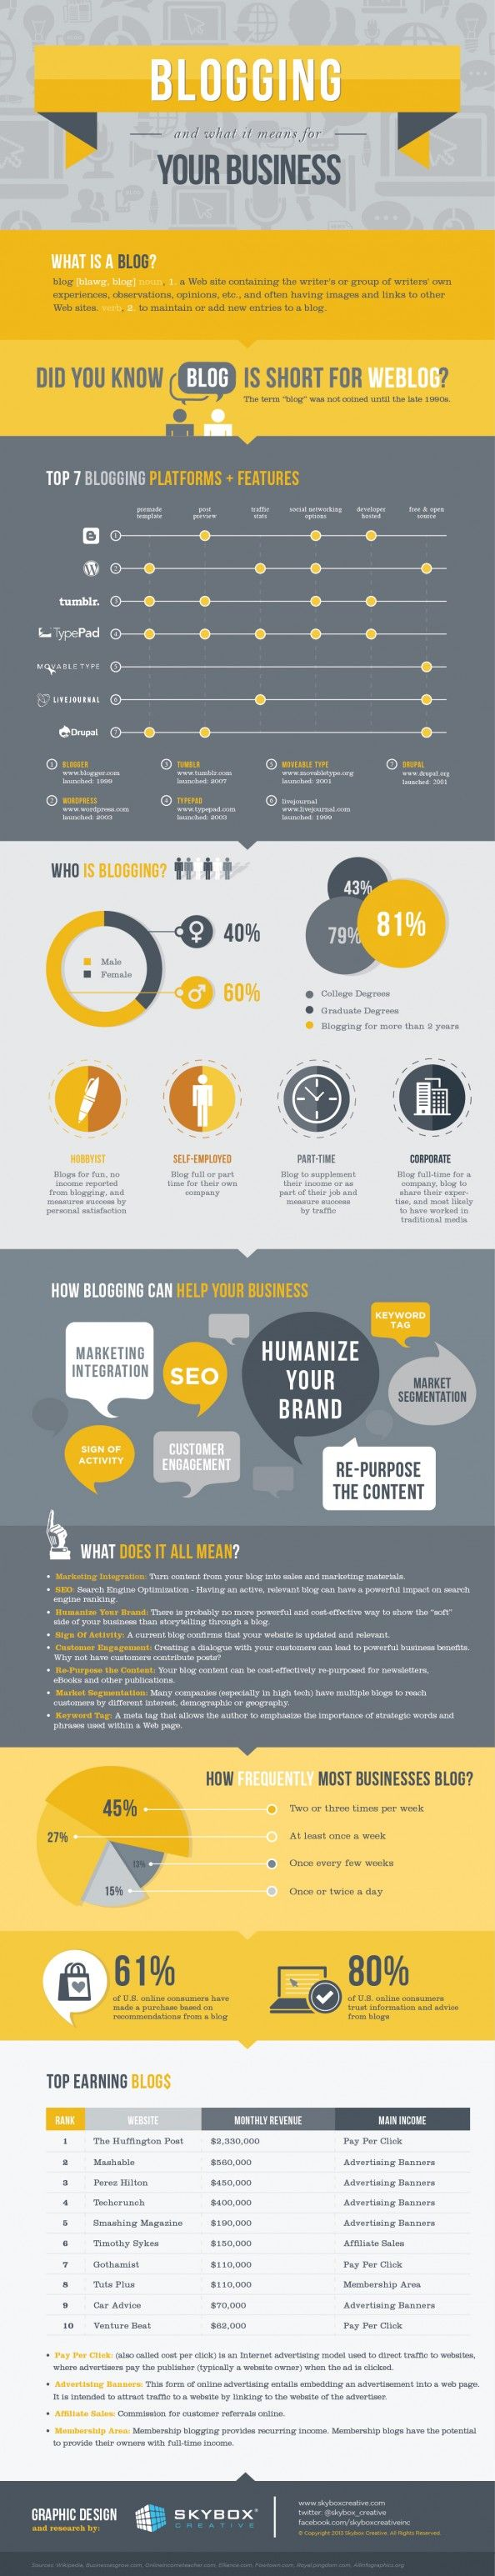 [Infographic]: Blogging for Business